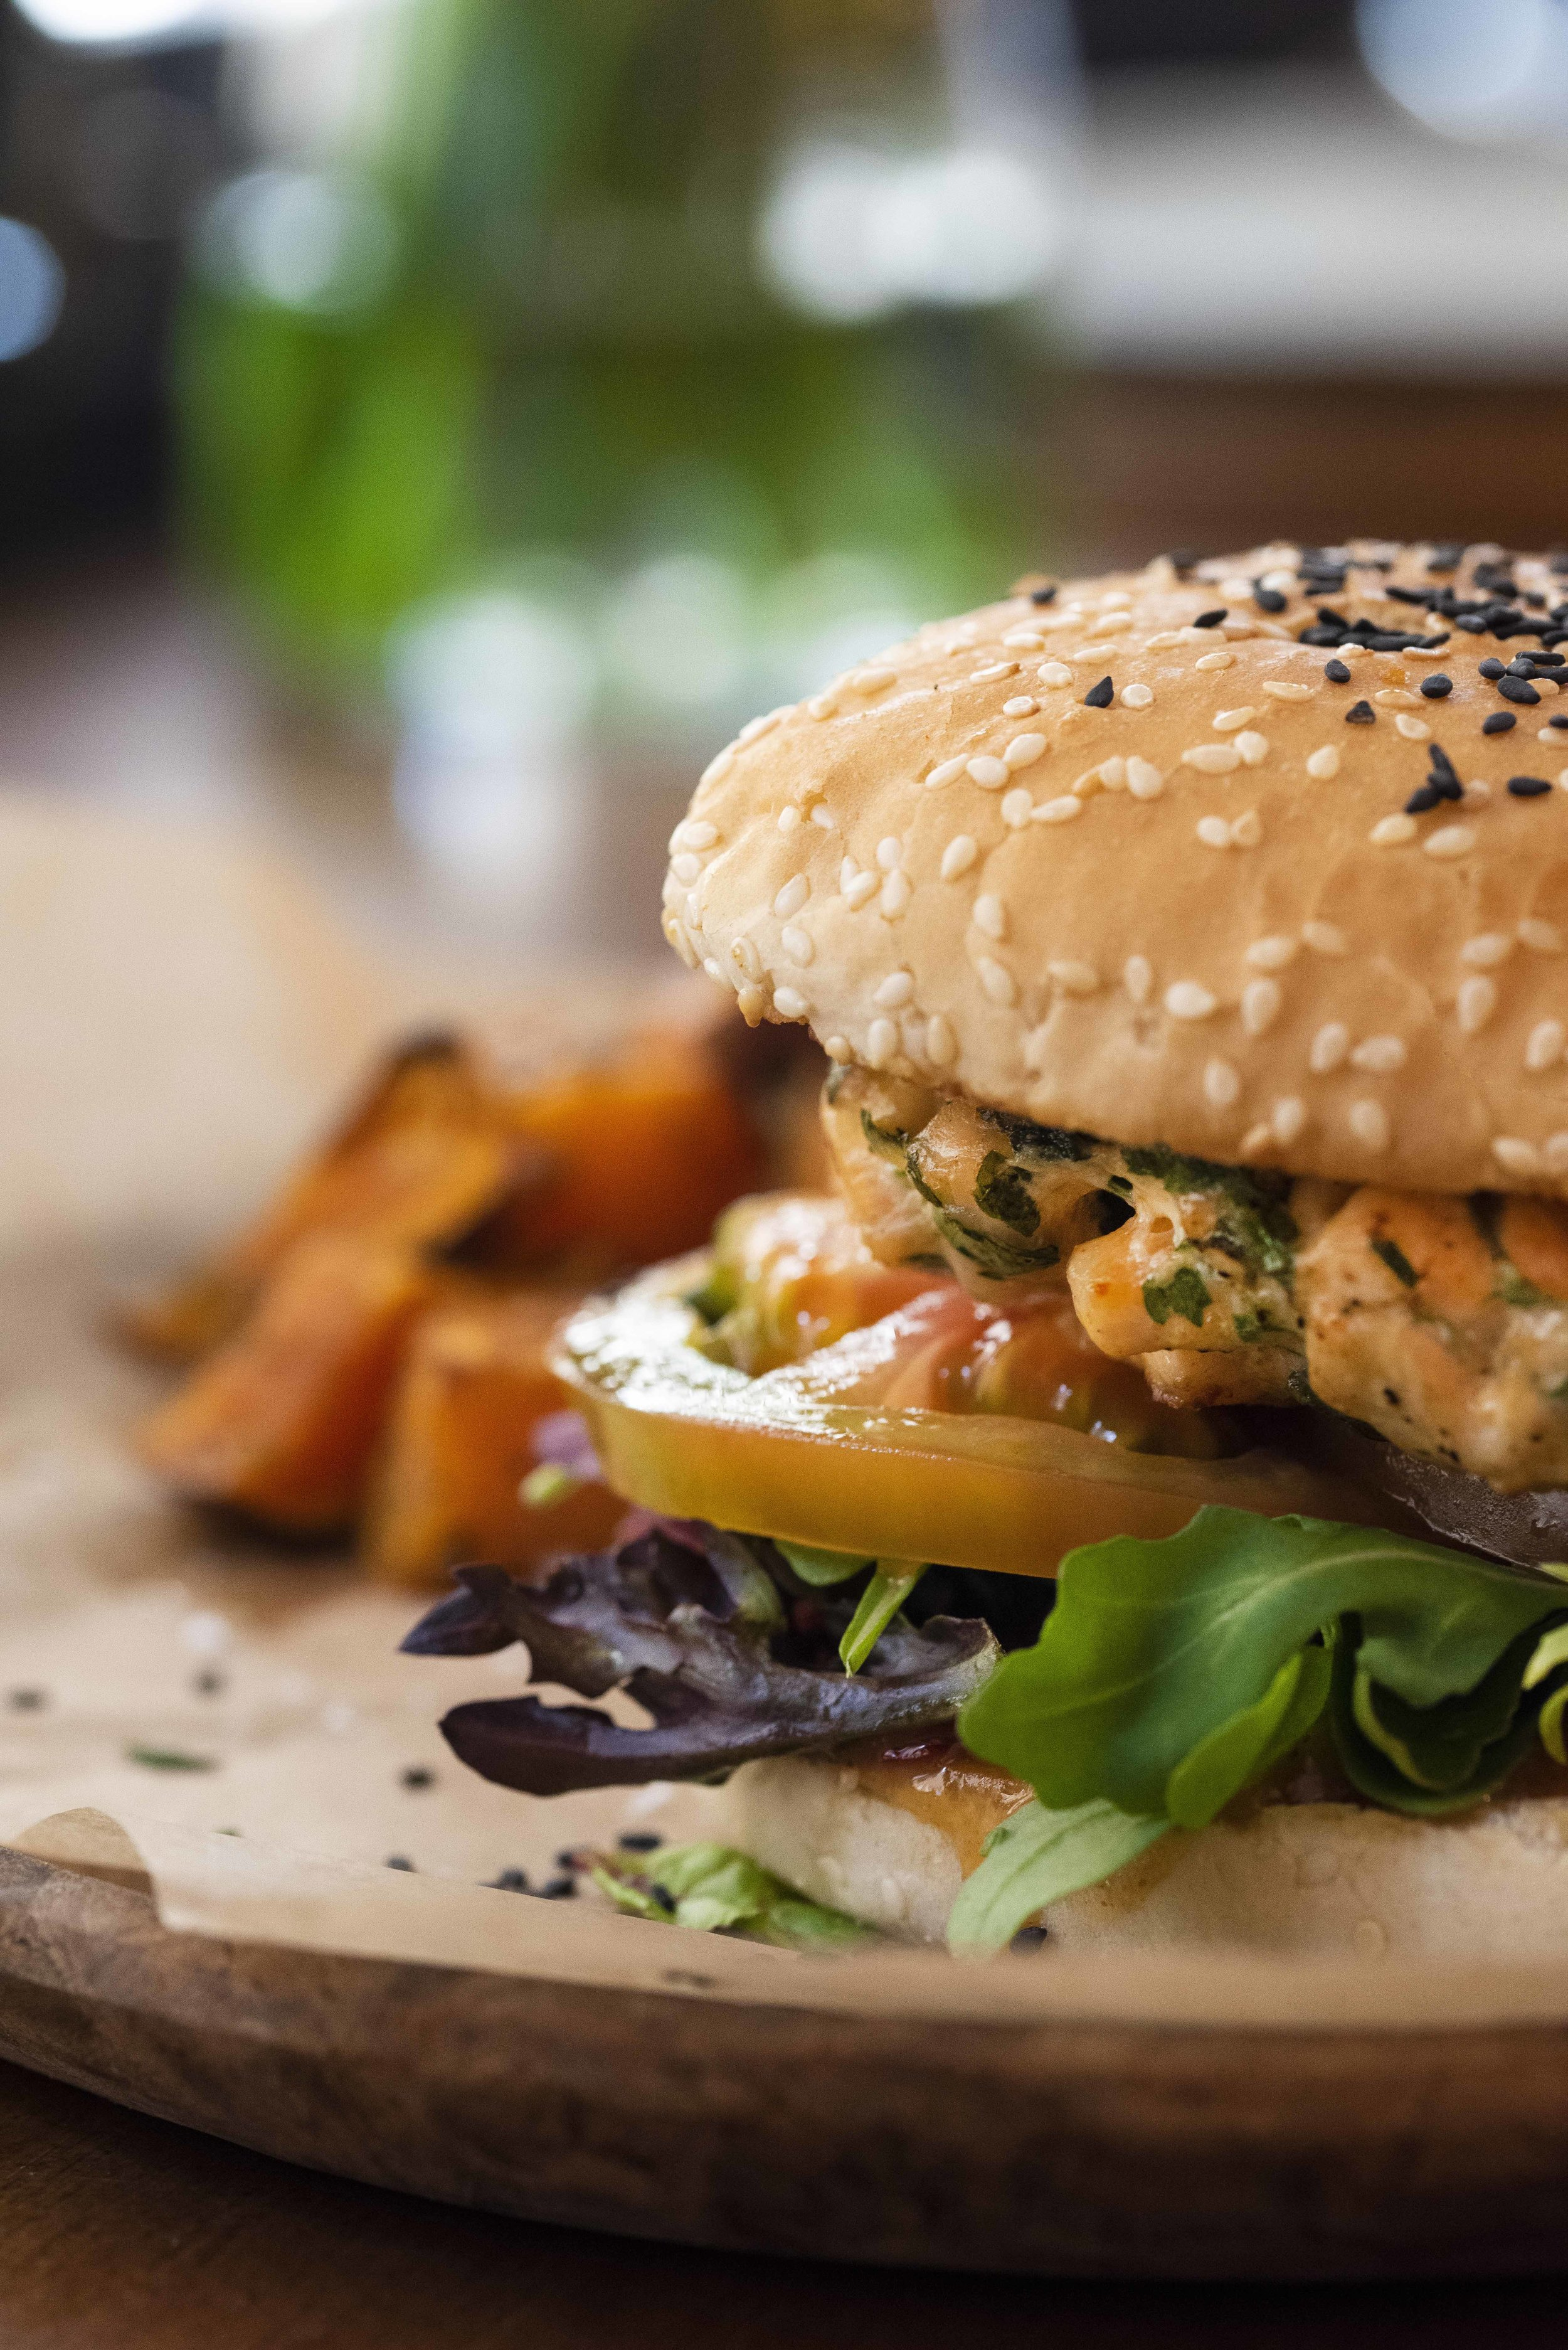 Salmon burger at About.Salmon Restaurant, Barcelona. Photo © Barcelona Food Experience.